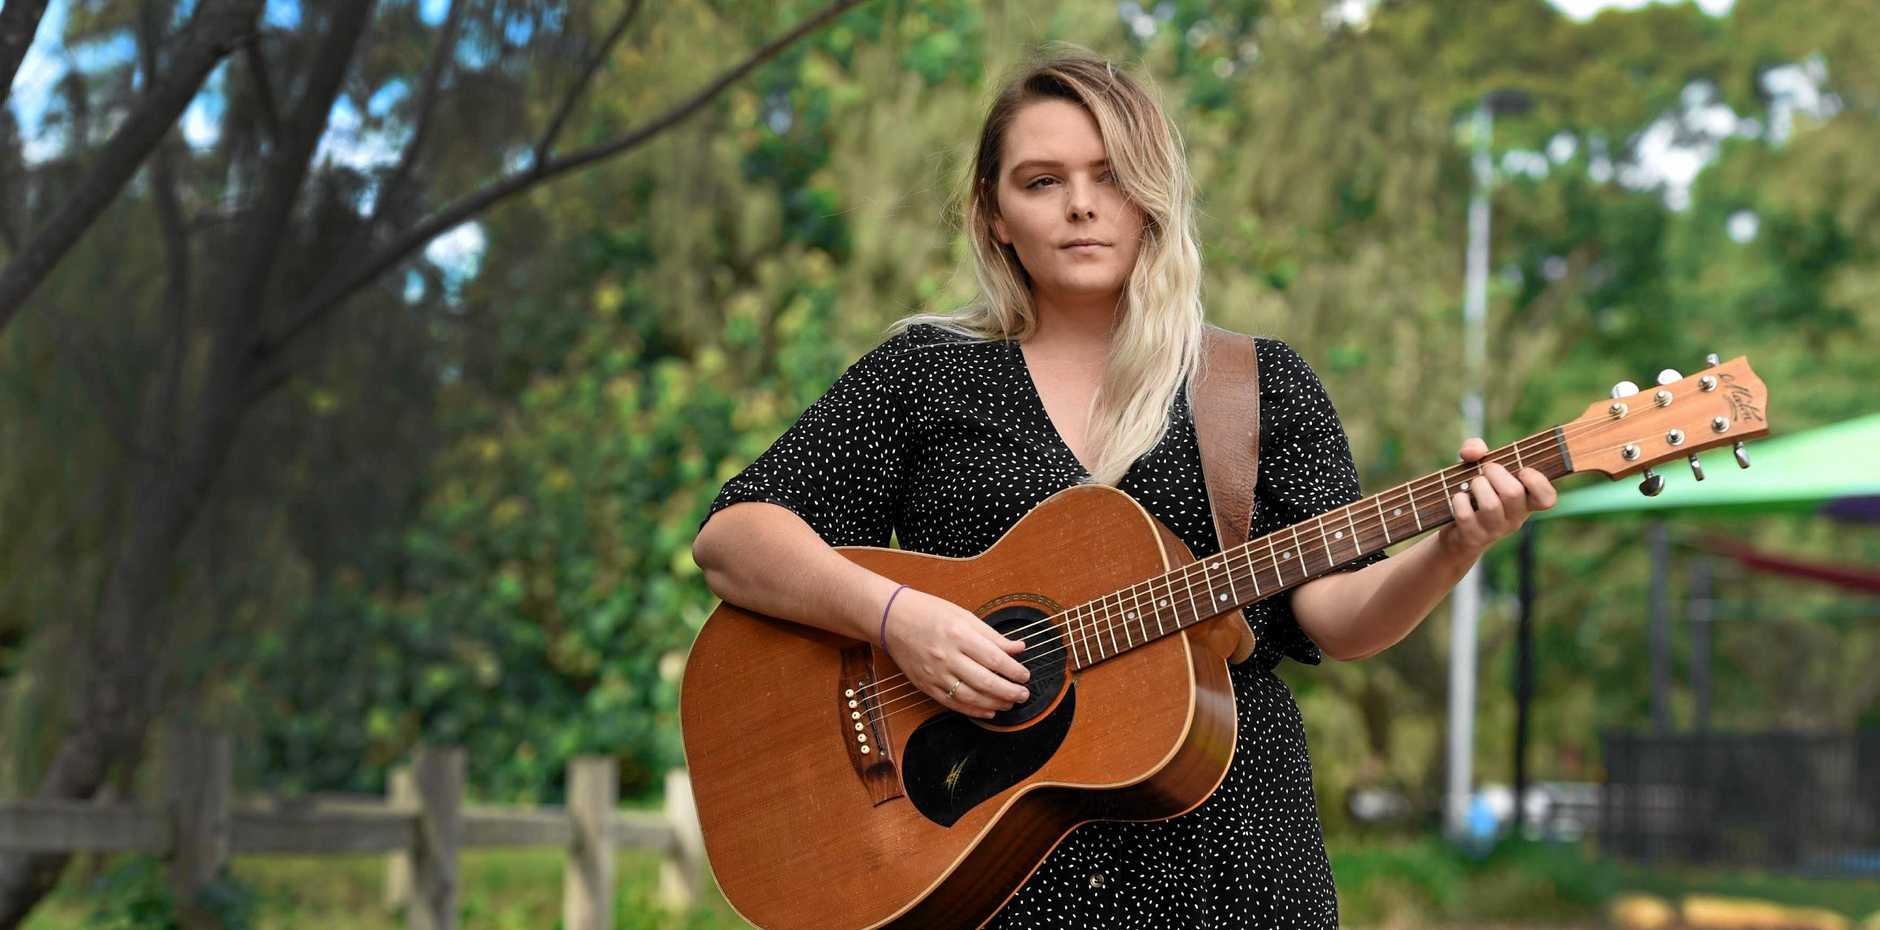 SONGWRITING SUCCESS: Leonie Kingdom's new single is garnering serious traction among Triple J listeners.